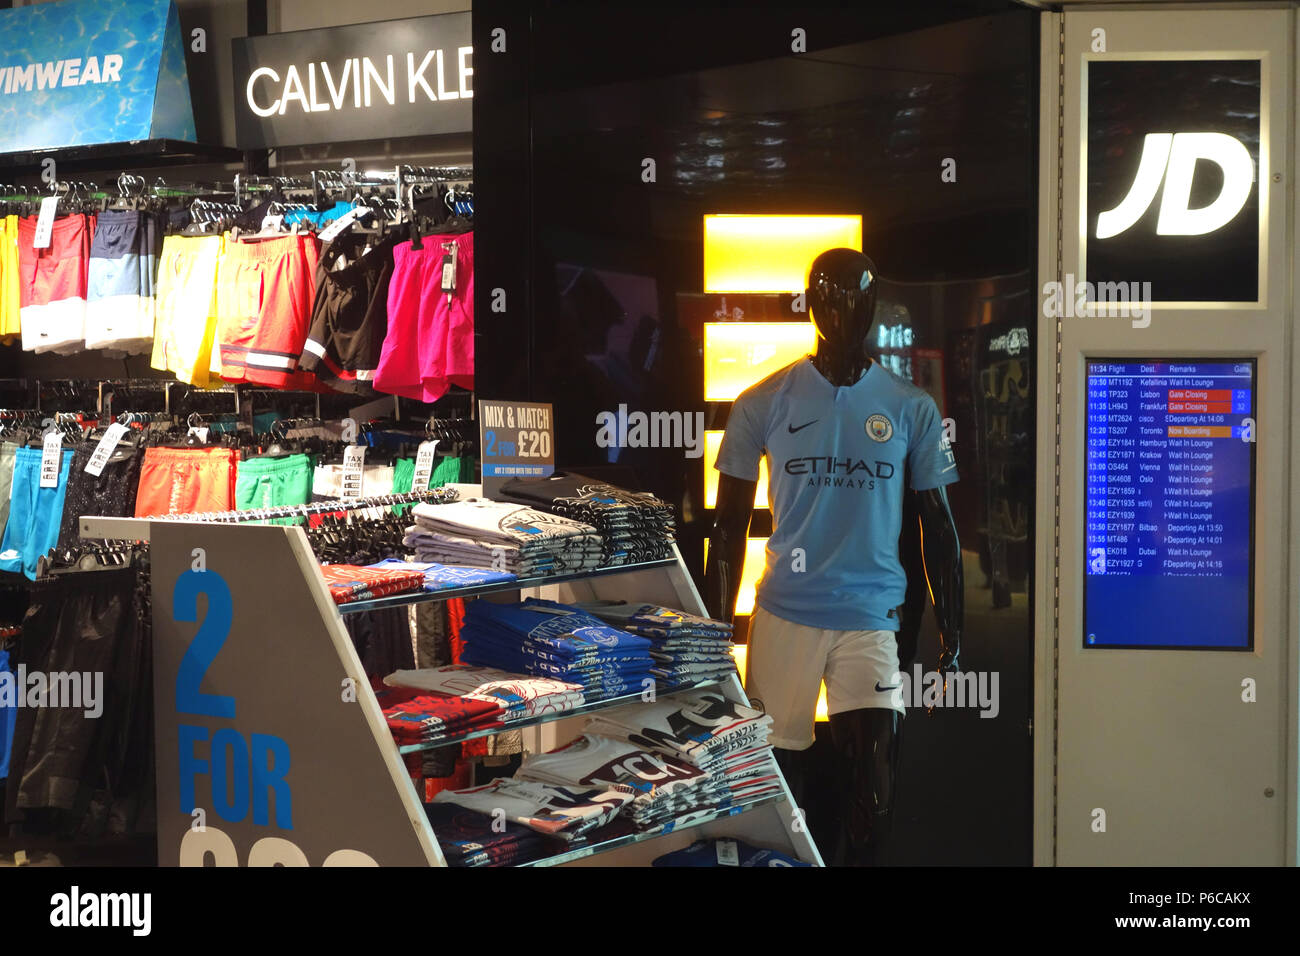 JD Sports Duty Free Shop, Manchester Airport Departure